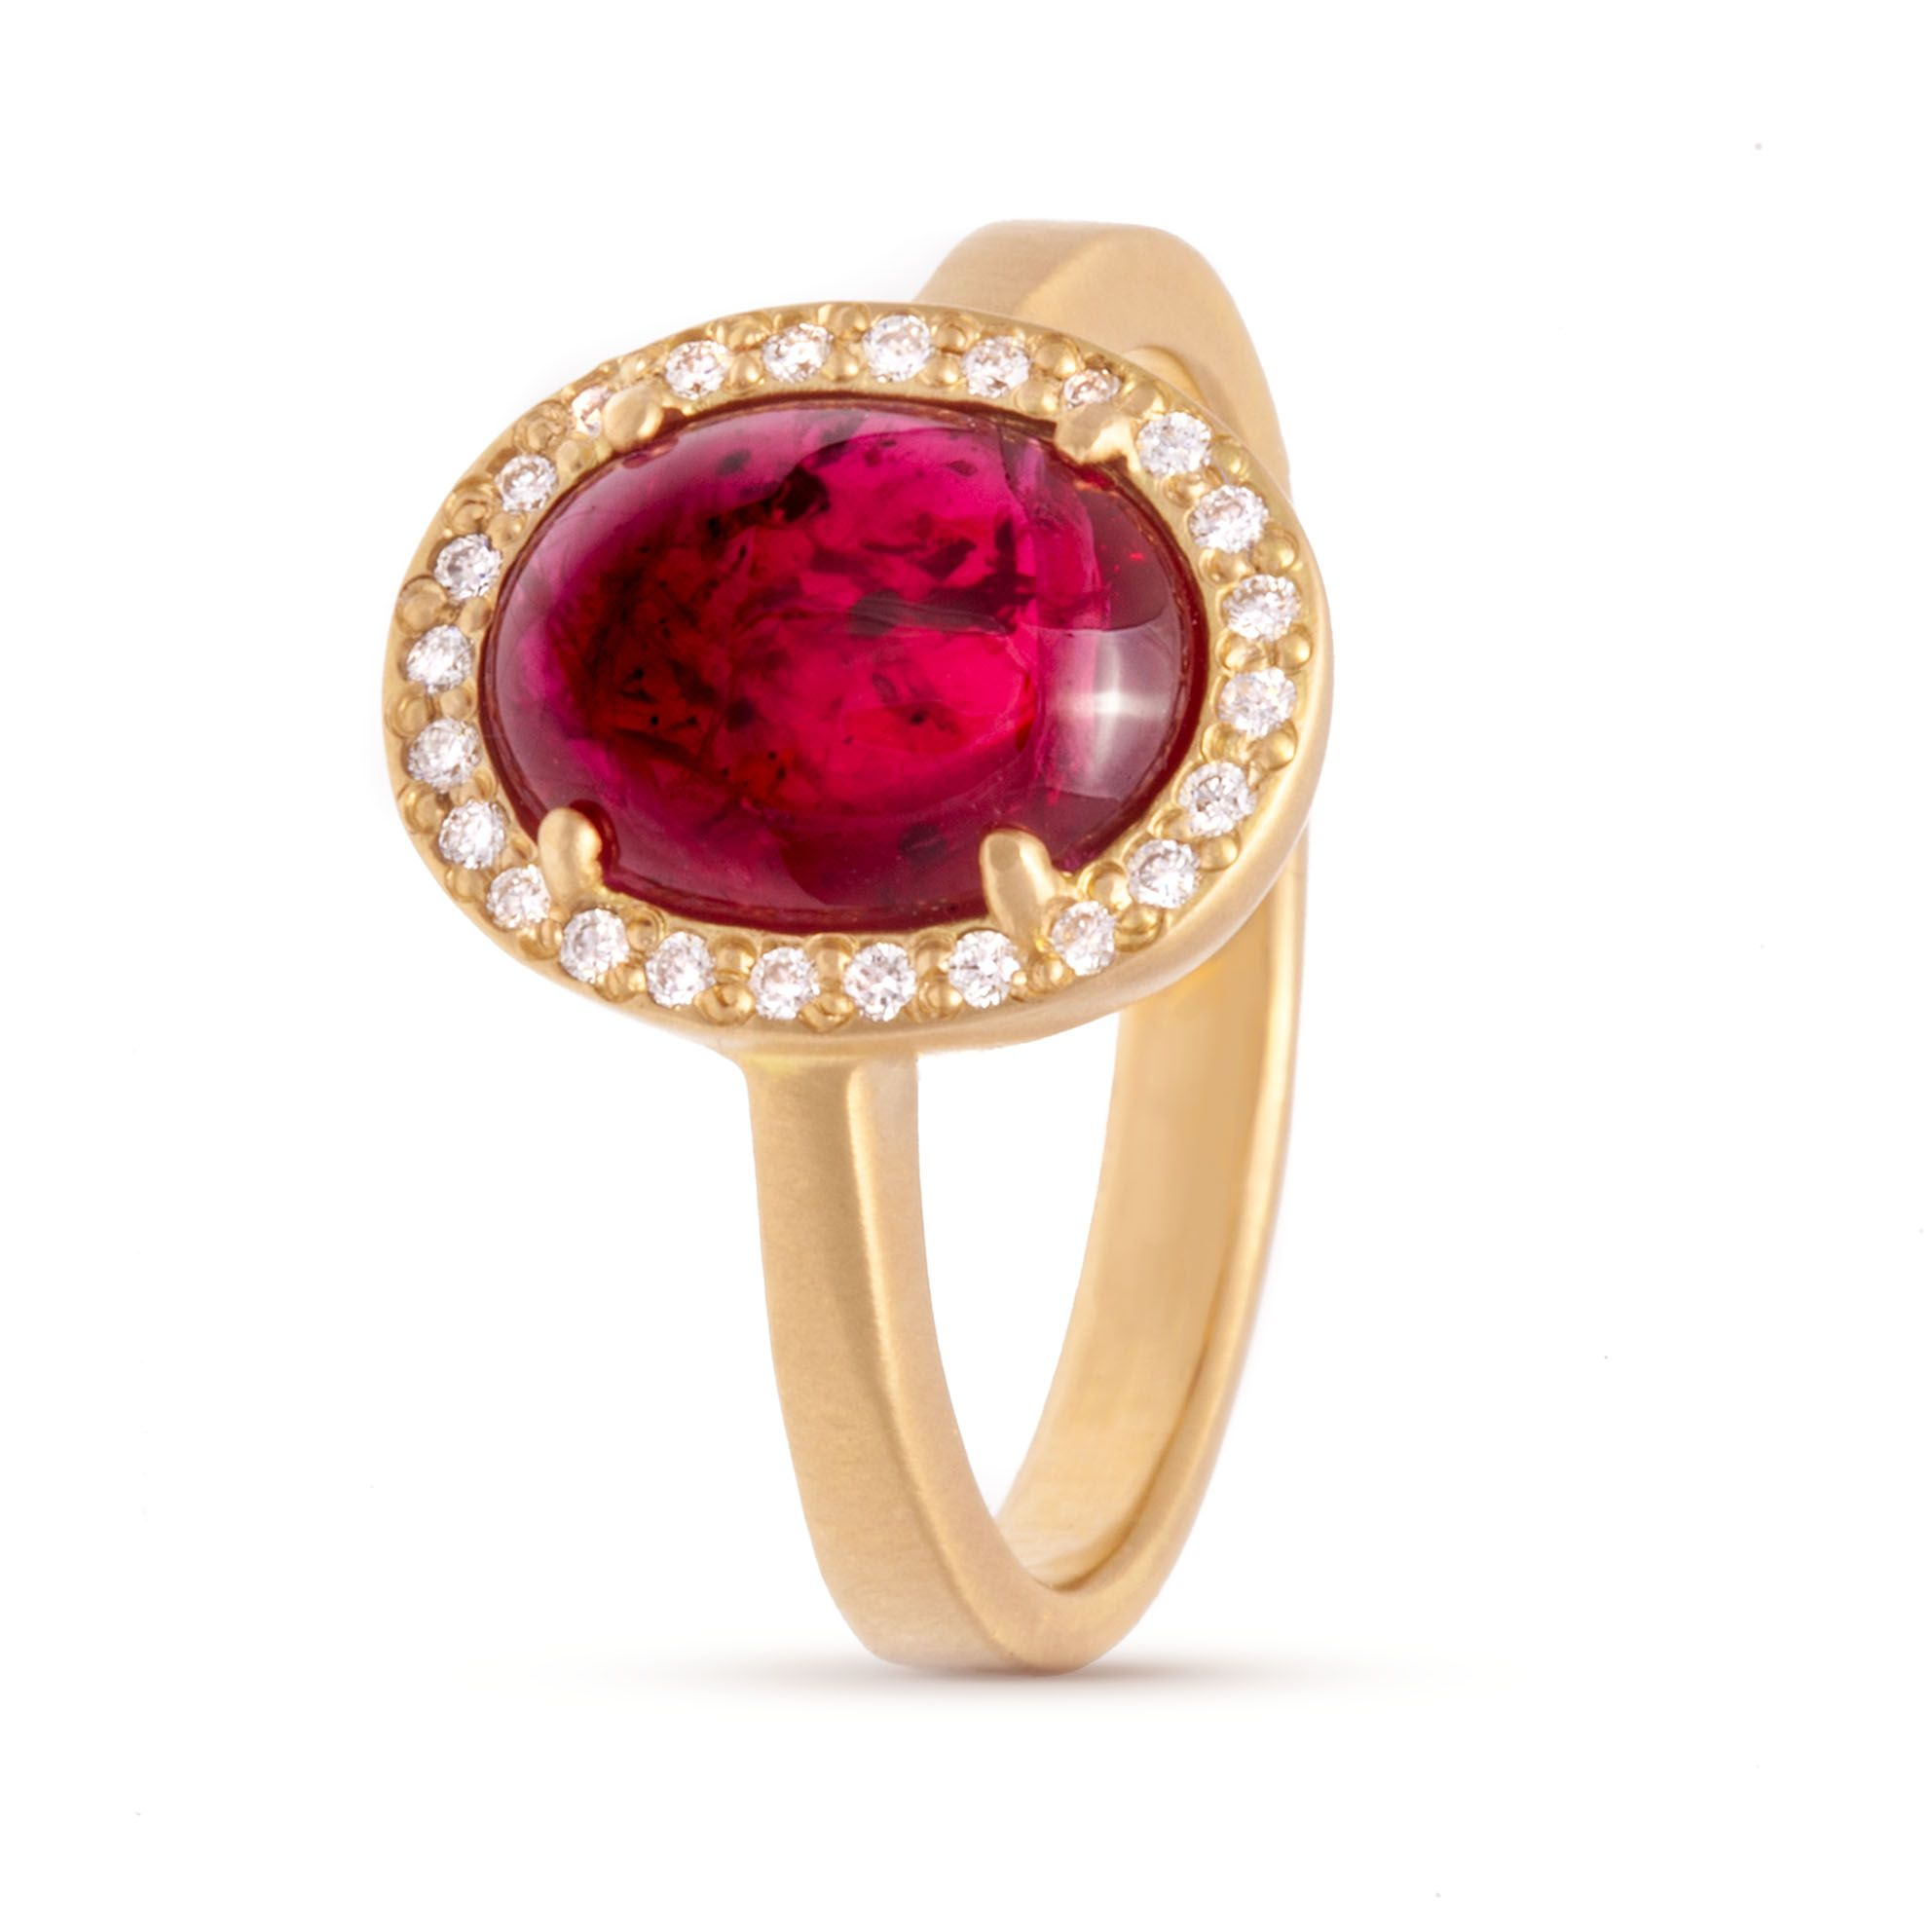 Vintage Cabochon Ruby Ring Ring Designers and Three diamond ring